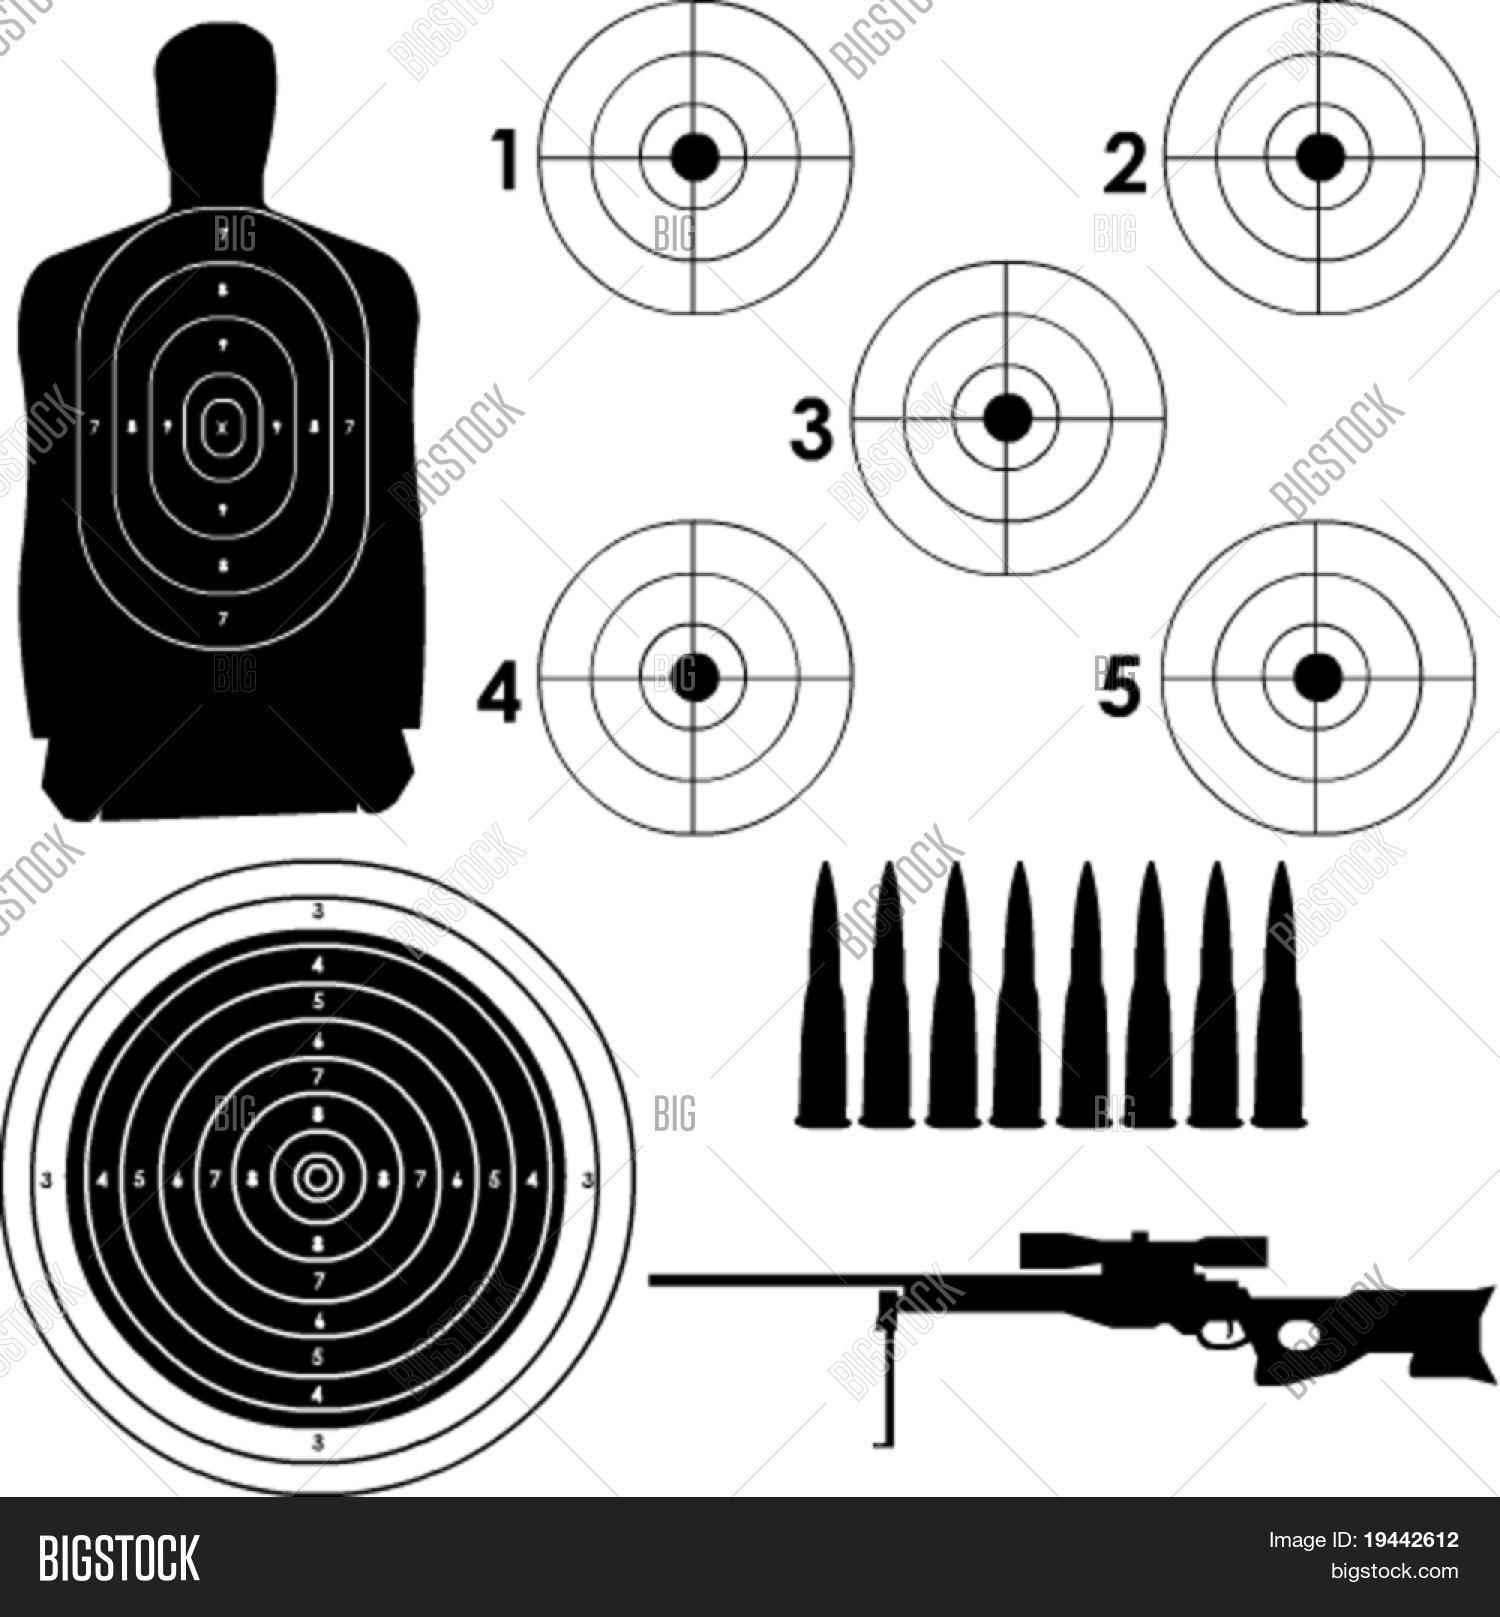 picture regarding Printable Sniper Targets titled 🔥 Alternate plans in just vector layout with sniper rifle and